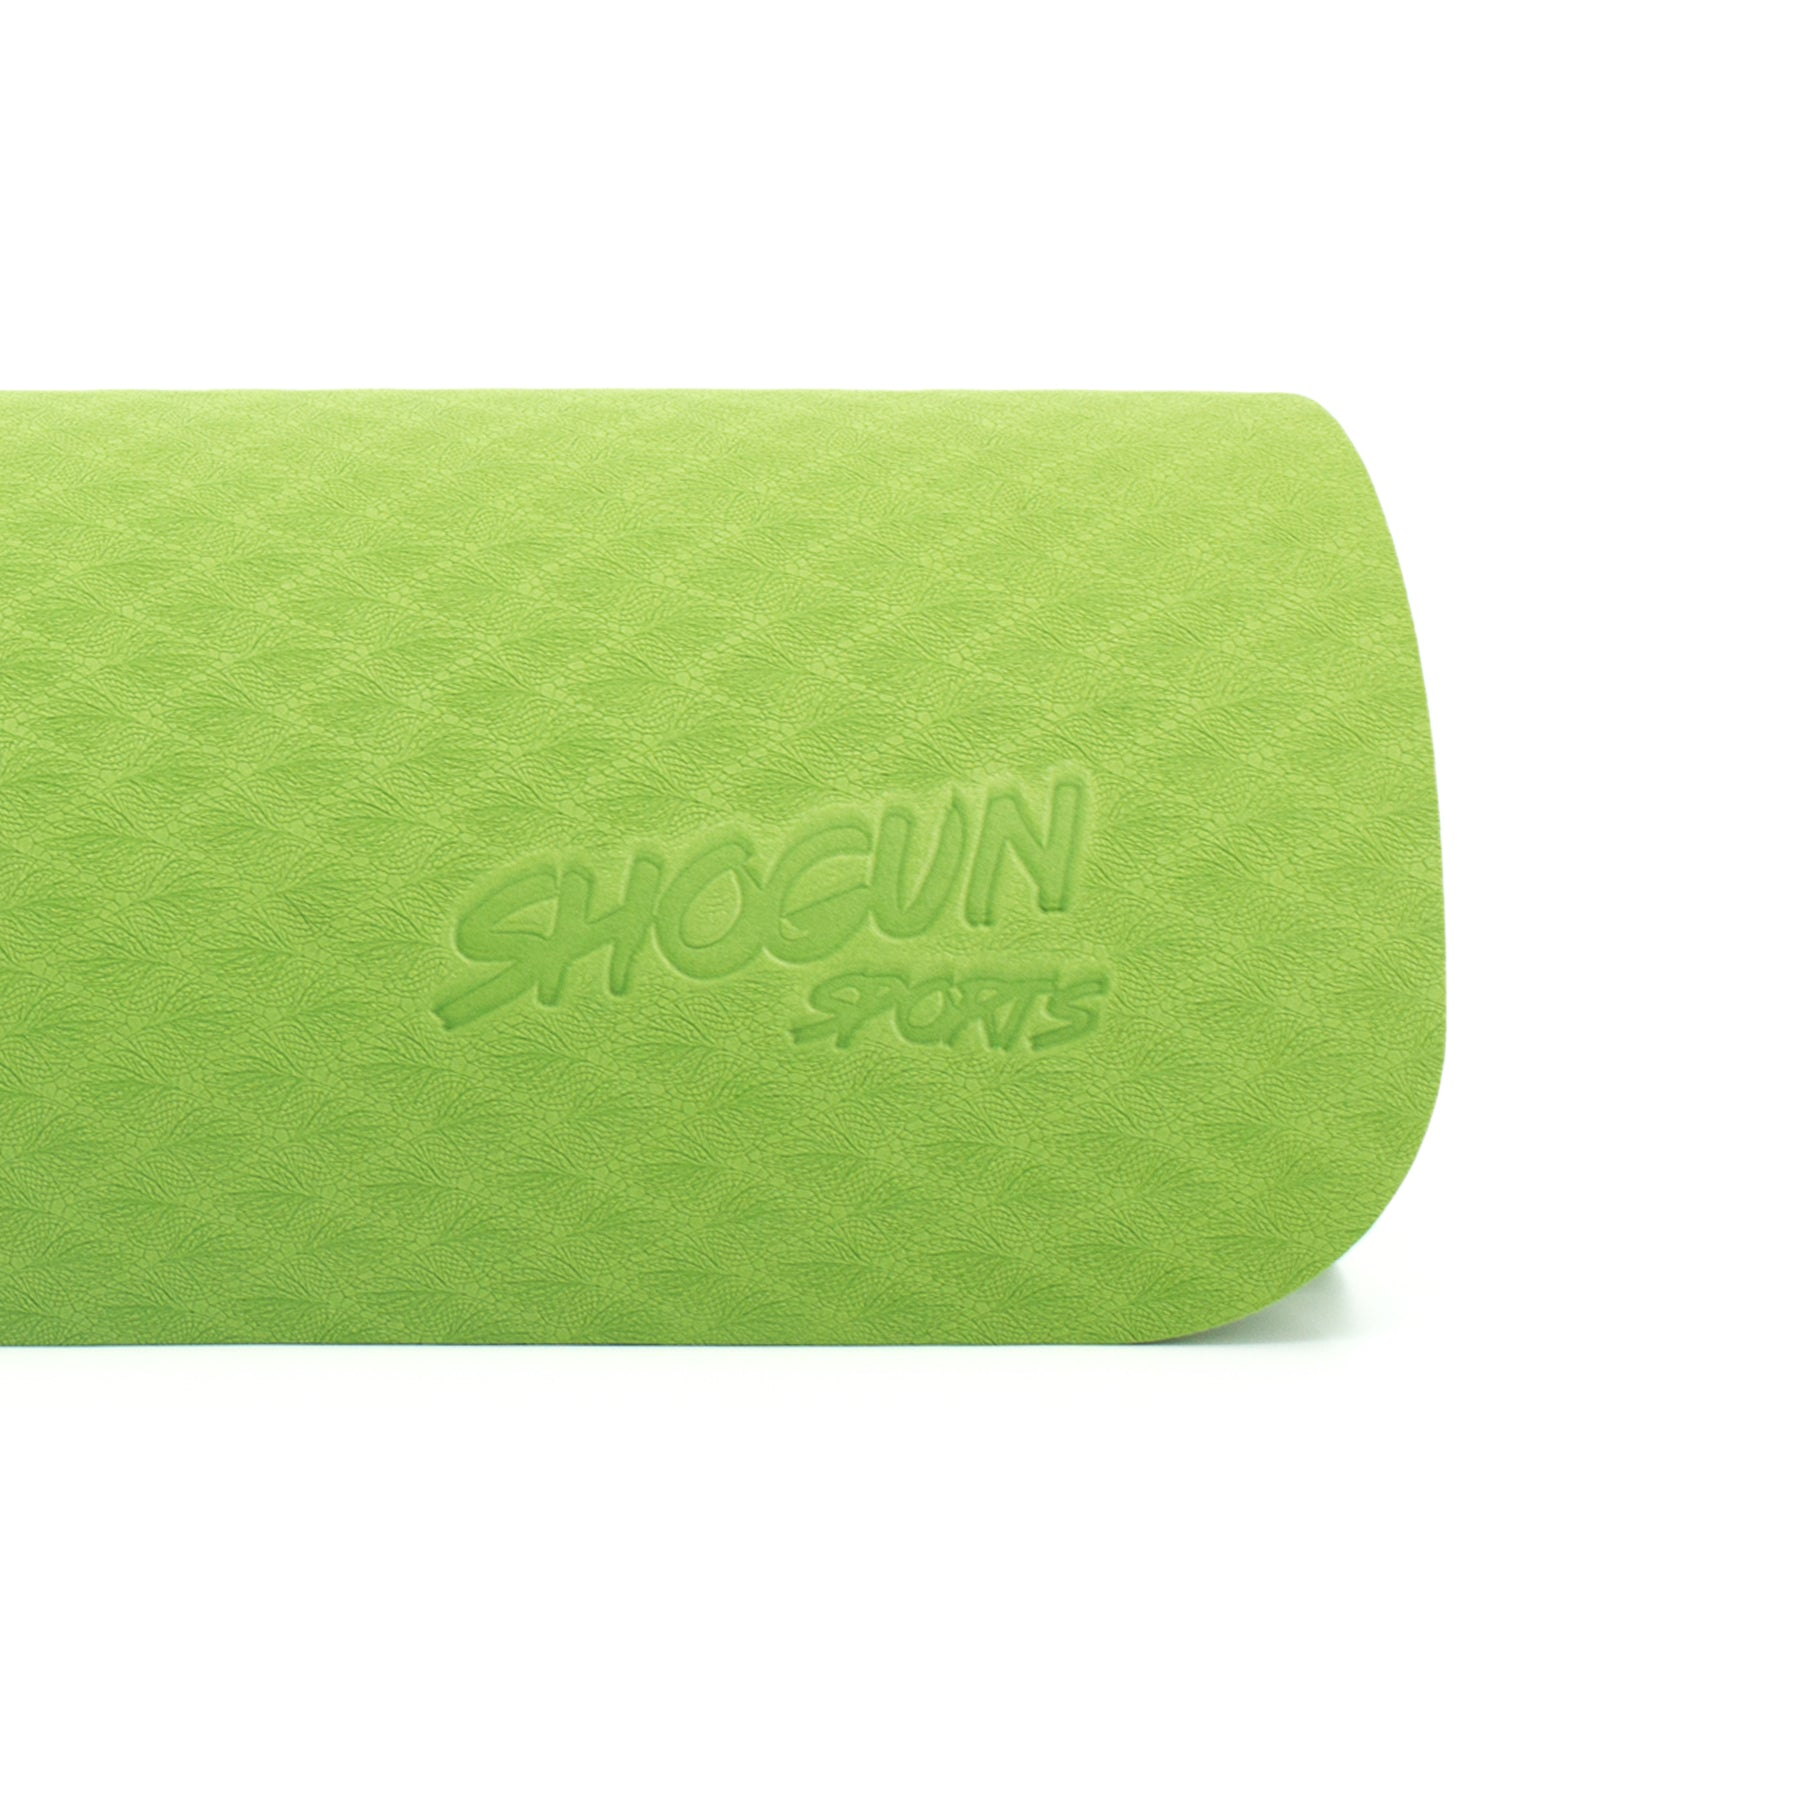 Shogun Sports Yoga Mat - Shogun Sports